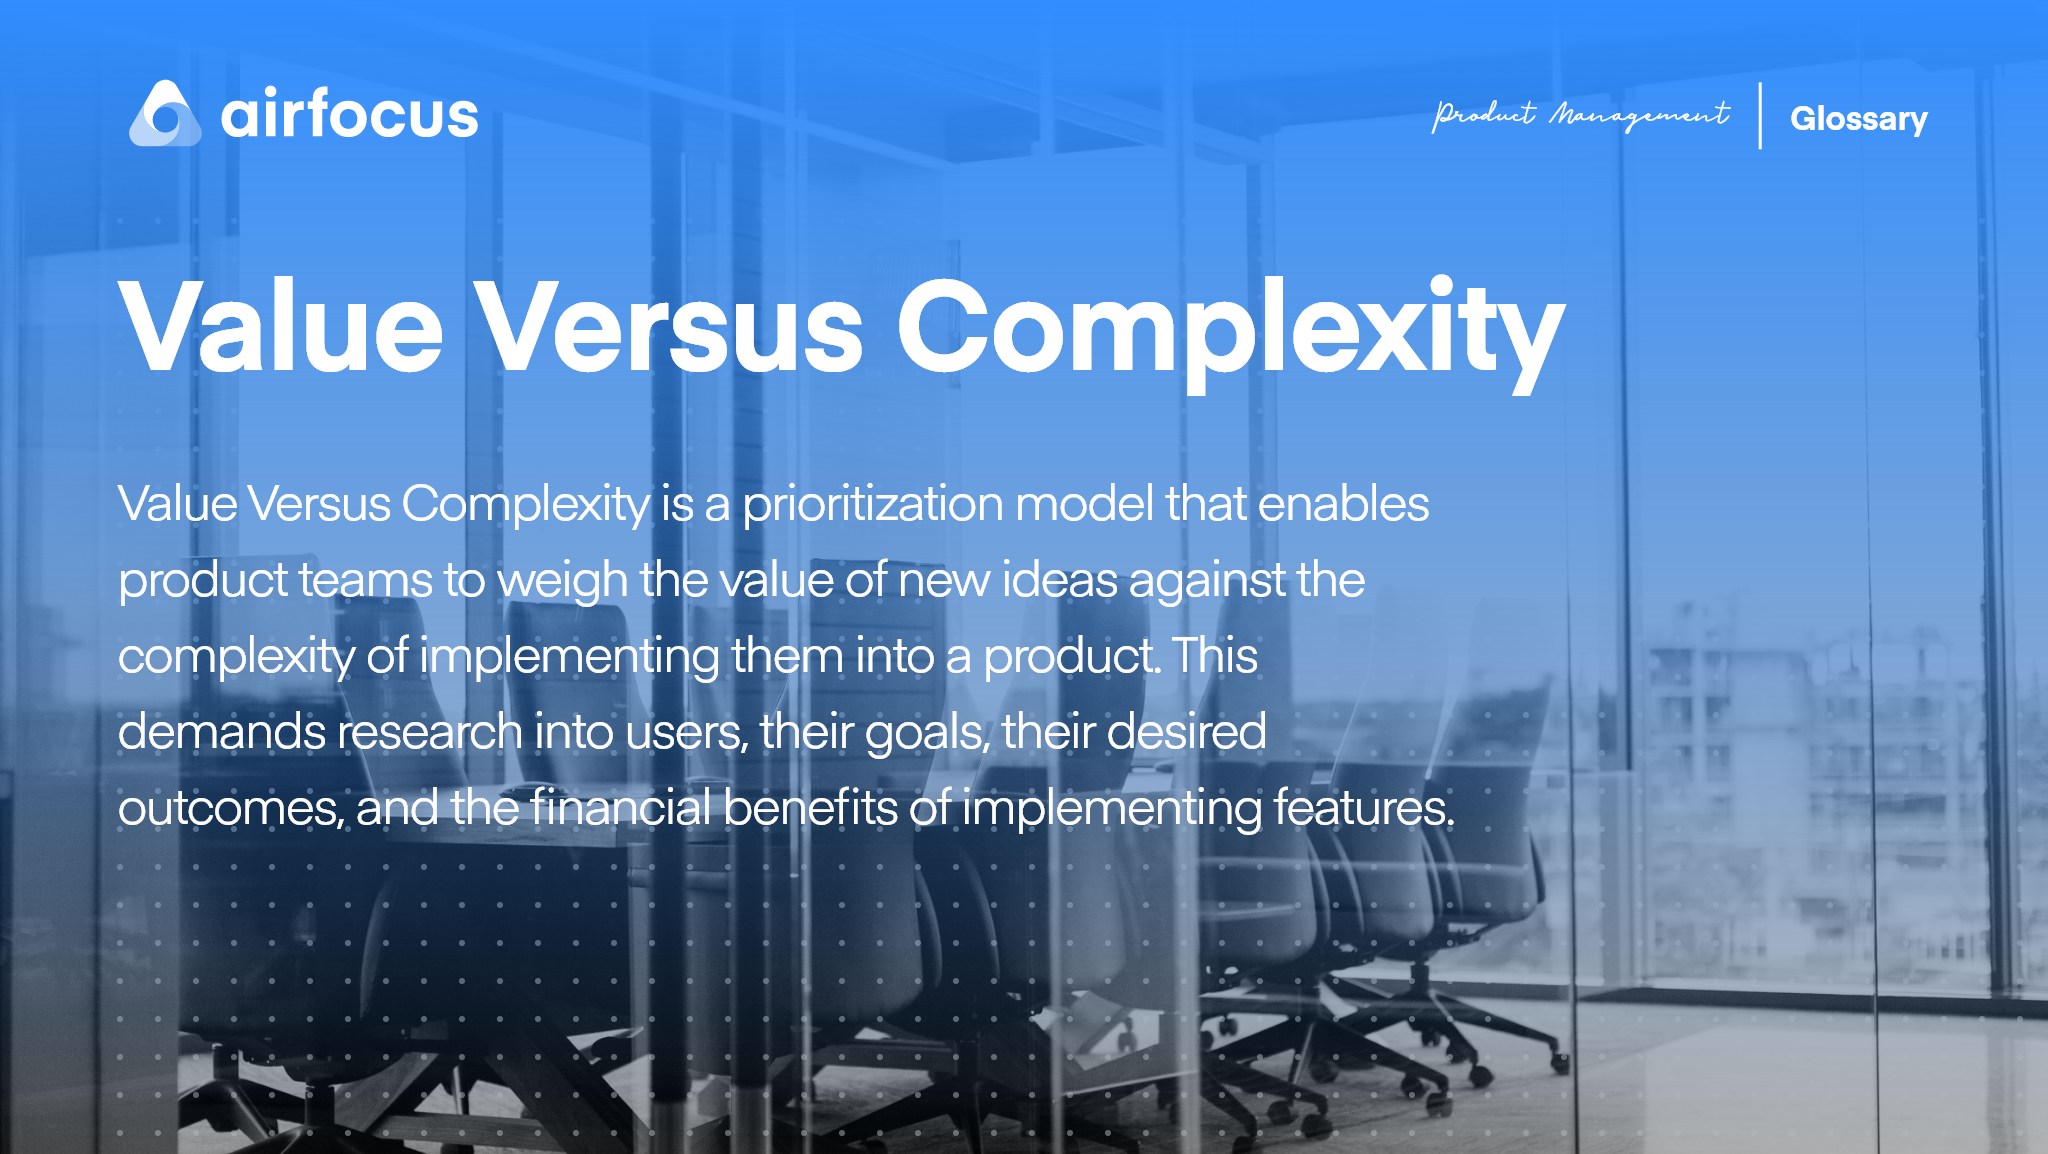 What Is Value versus Complexity?